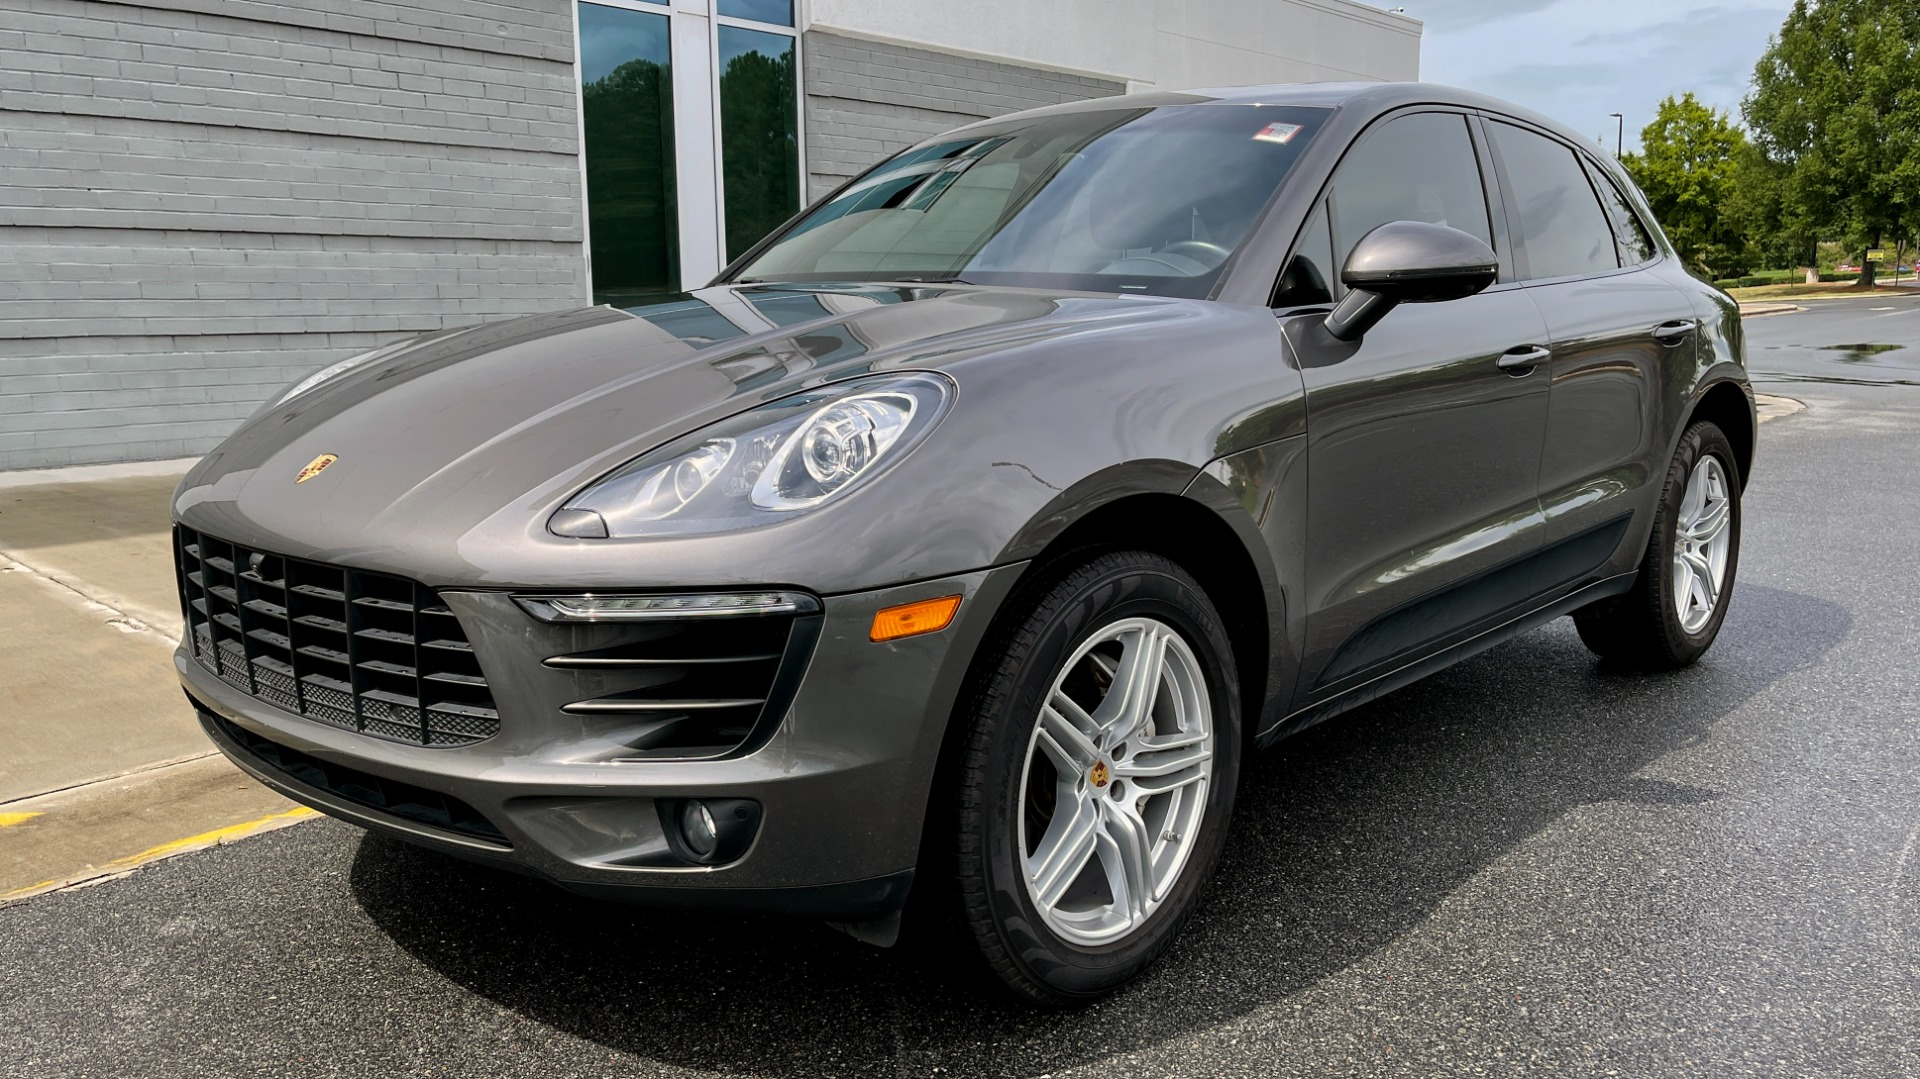 Used 2016 Porsche MACAN S PREMIUM PLUS / AWD / NAV / BOSE / SUNROOF / LCA / PARK ASST / INFOTAINMEN for sale $45,256 at Formula Imports in Charlotte NC 28227 4